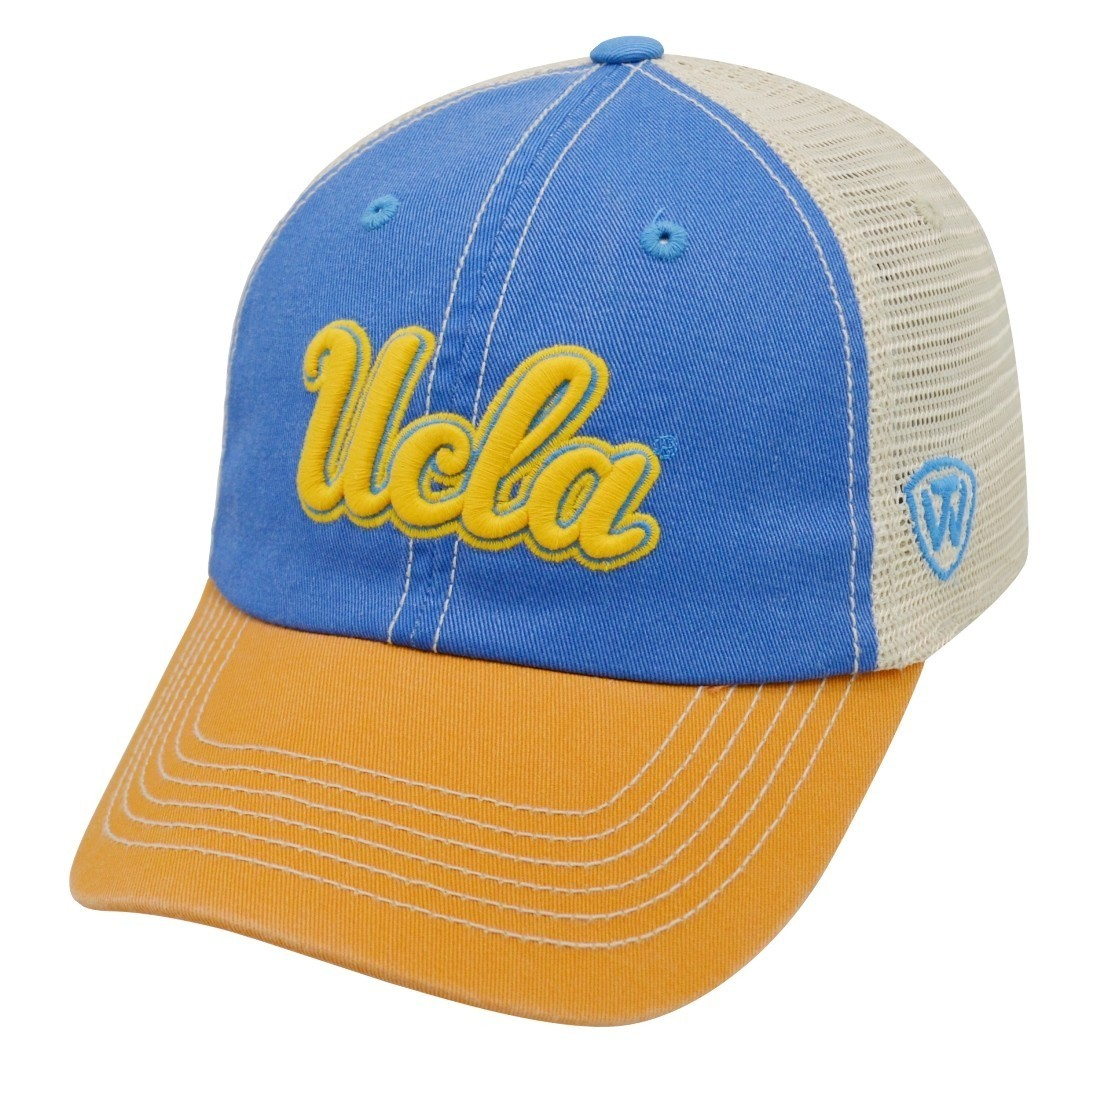 promo code a53ab dd6e0 Details about UCLA Bruins NCAA Top of the World